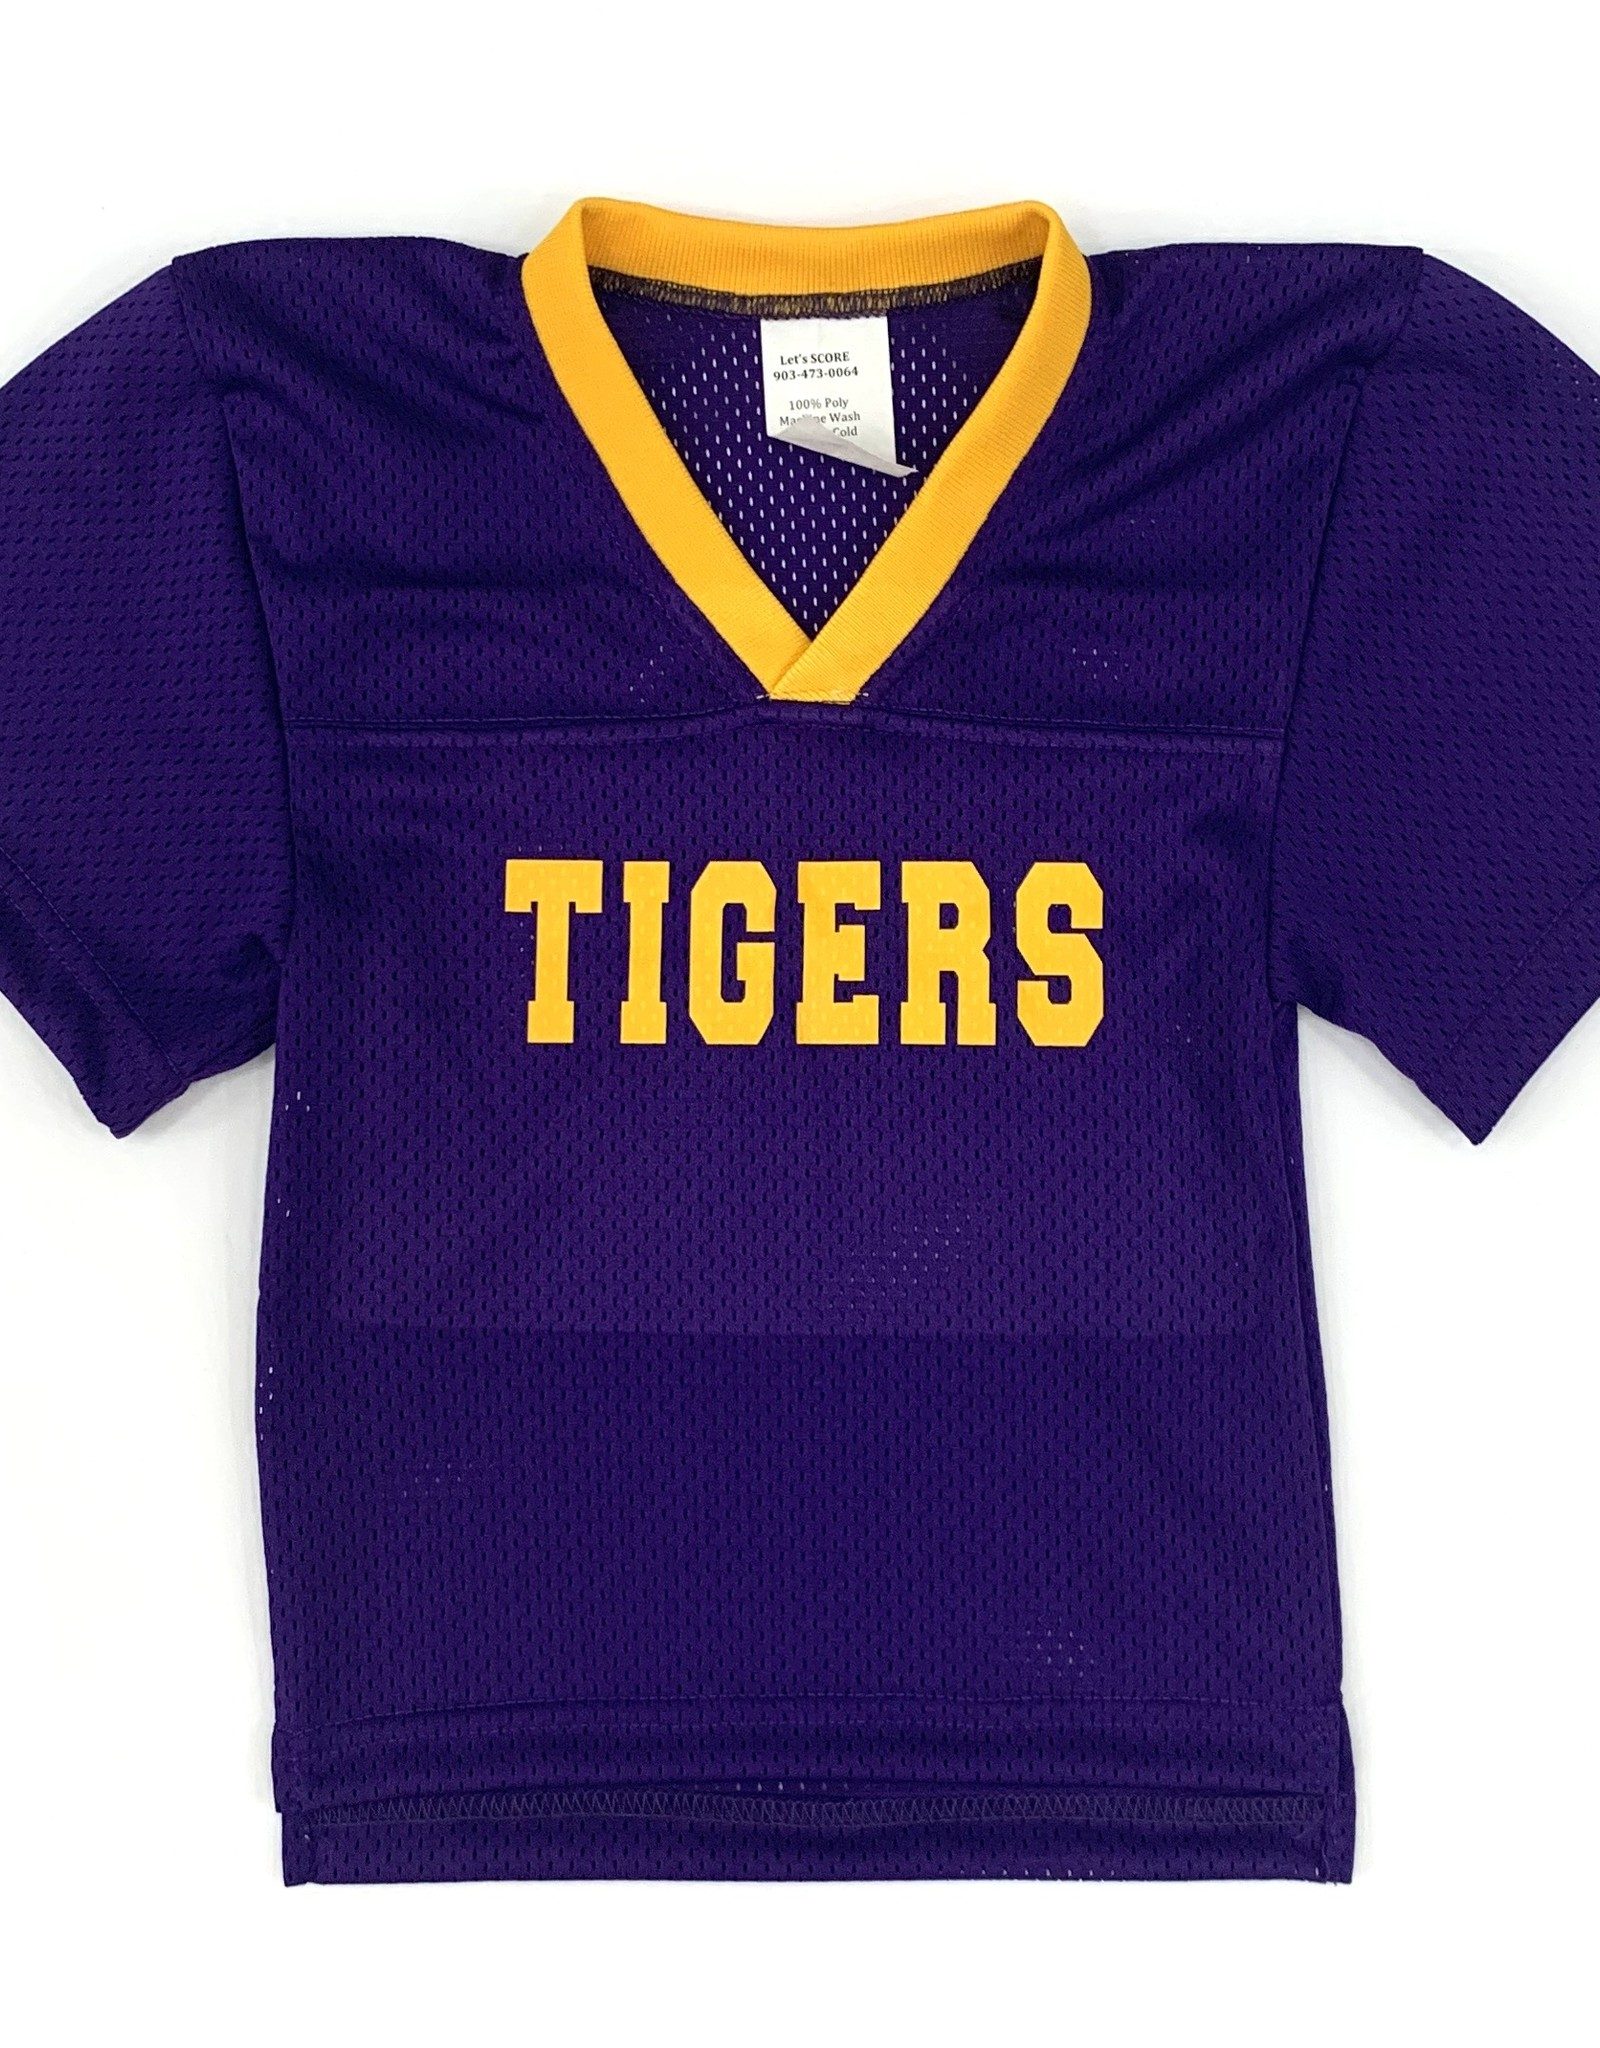 Let's Score Let's Score Tigers Football jersey